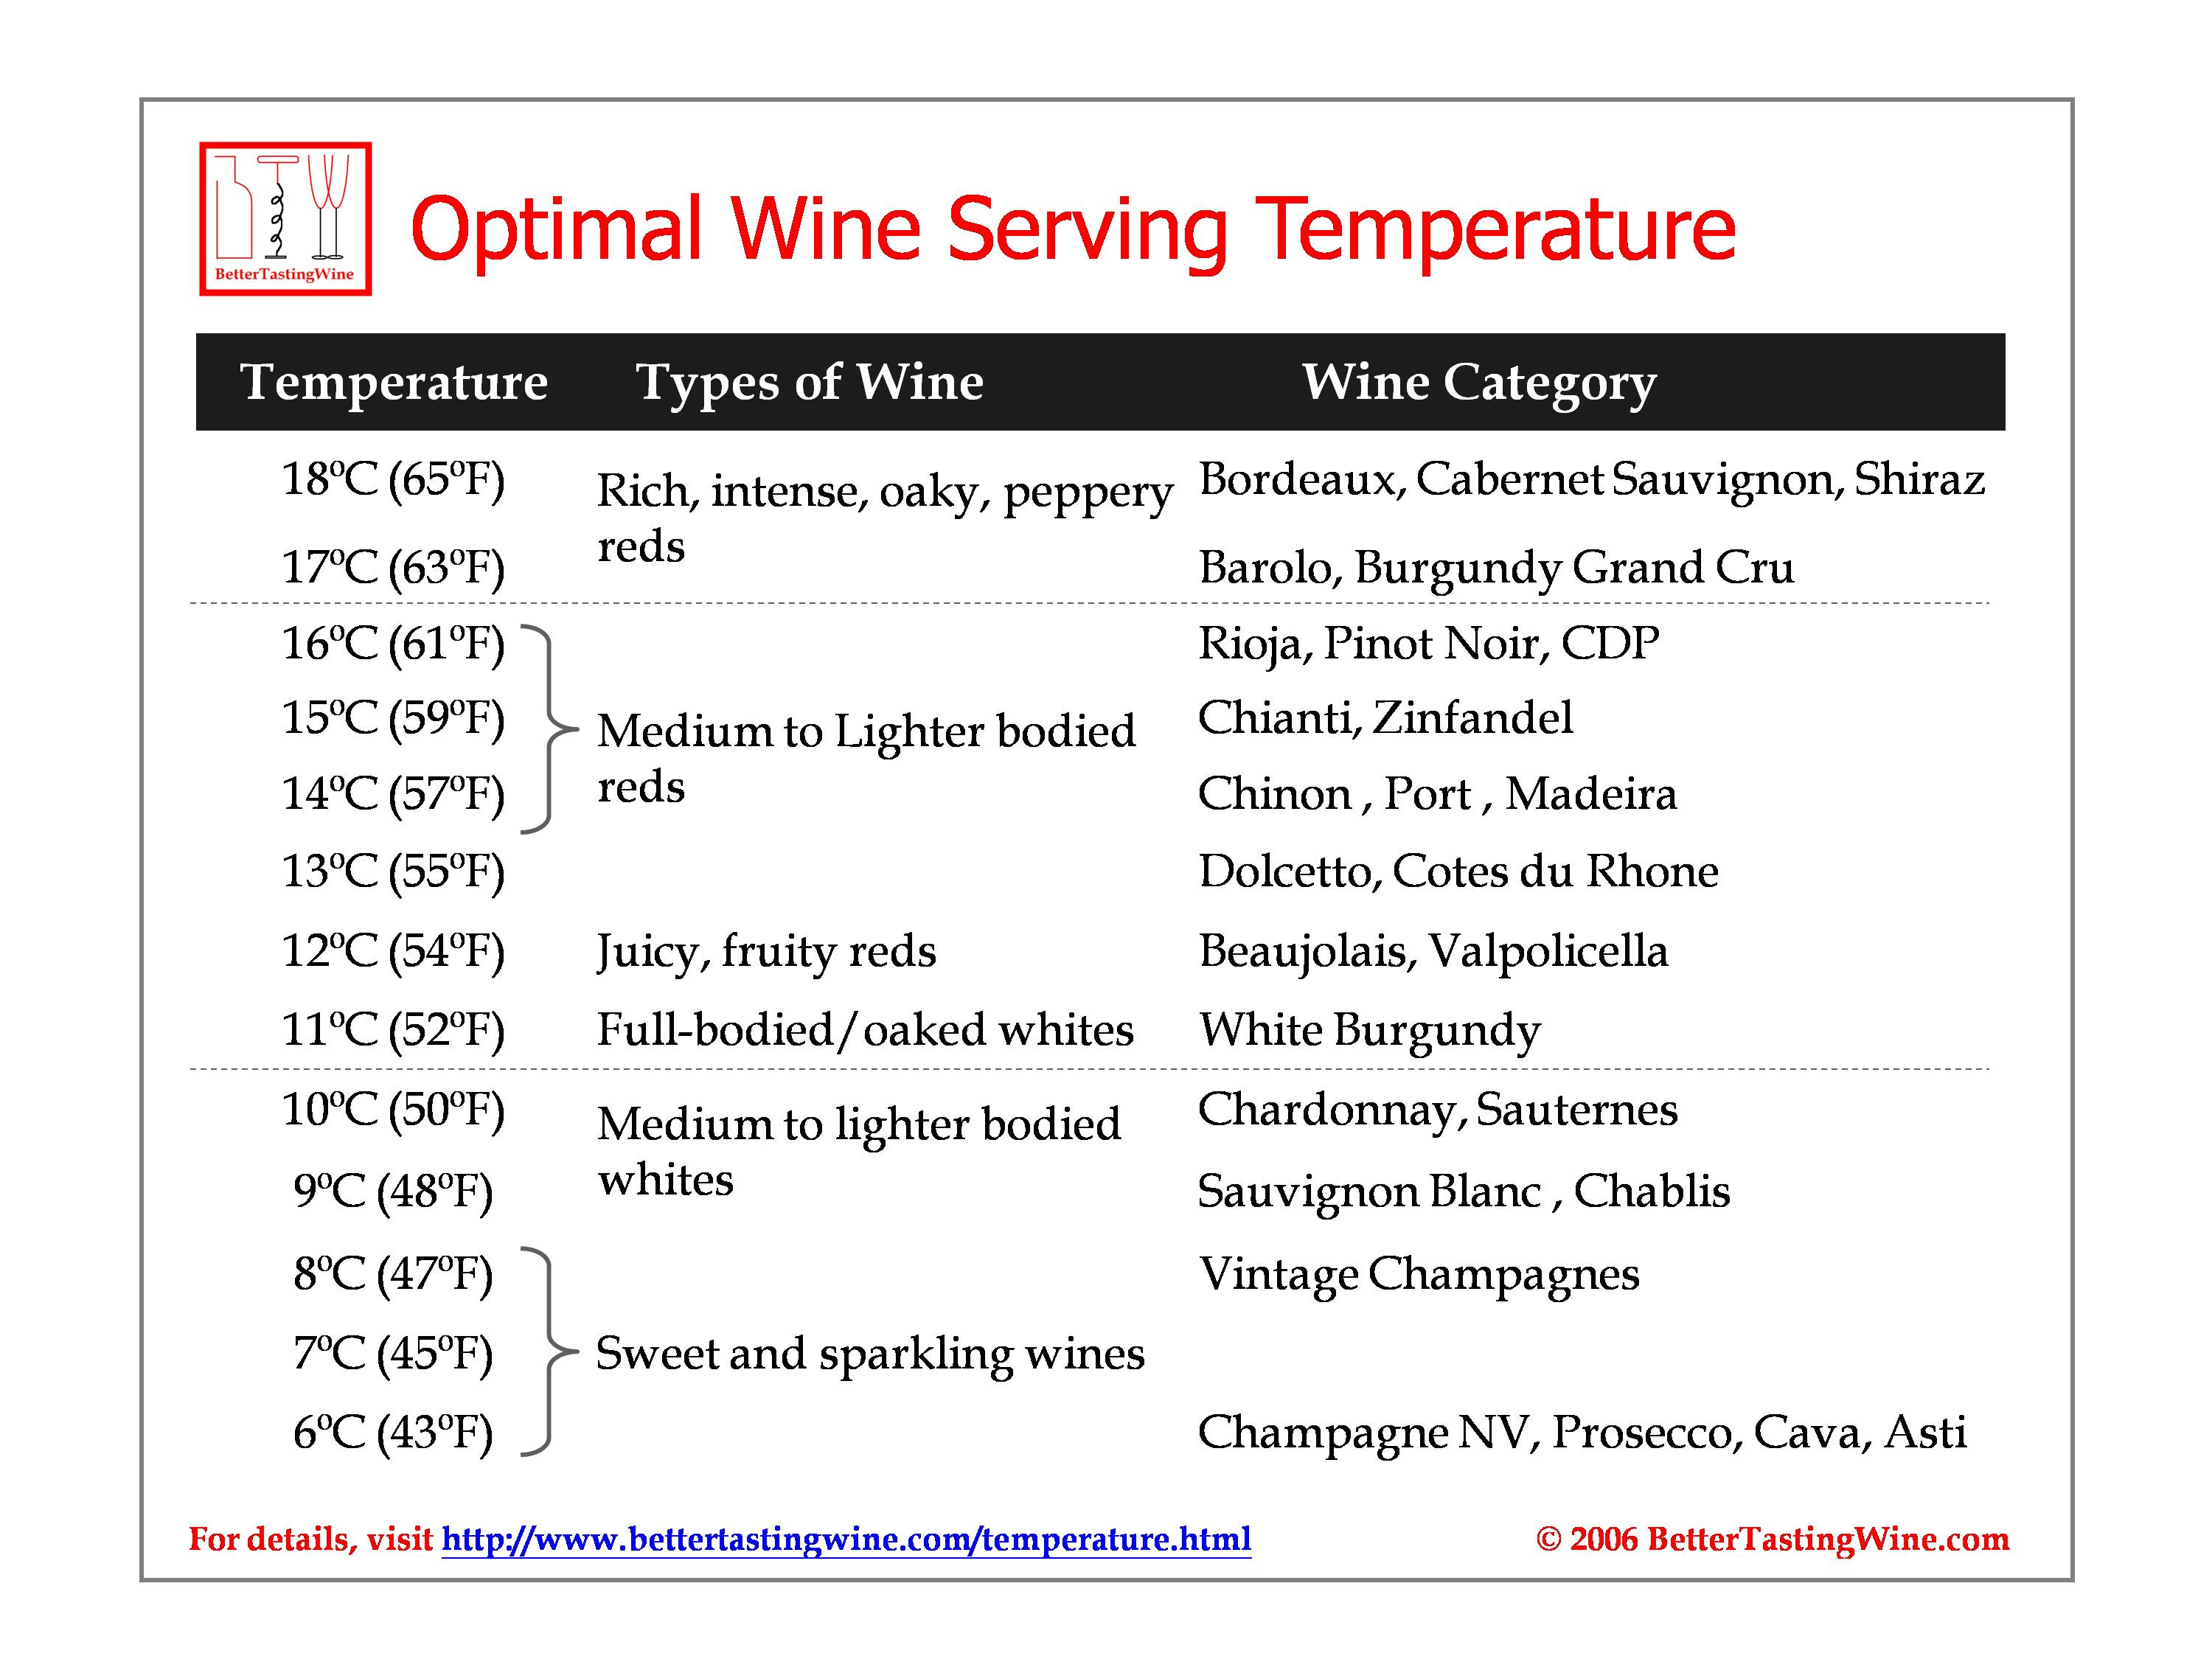 Bettertastingwine Wine Serving And Cellaring Temperature